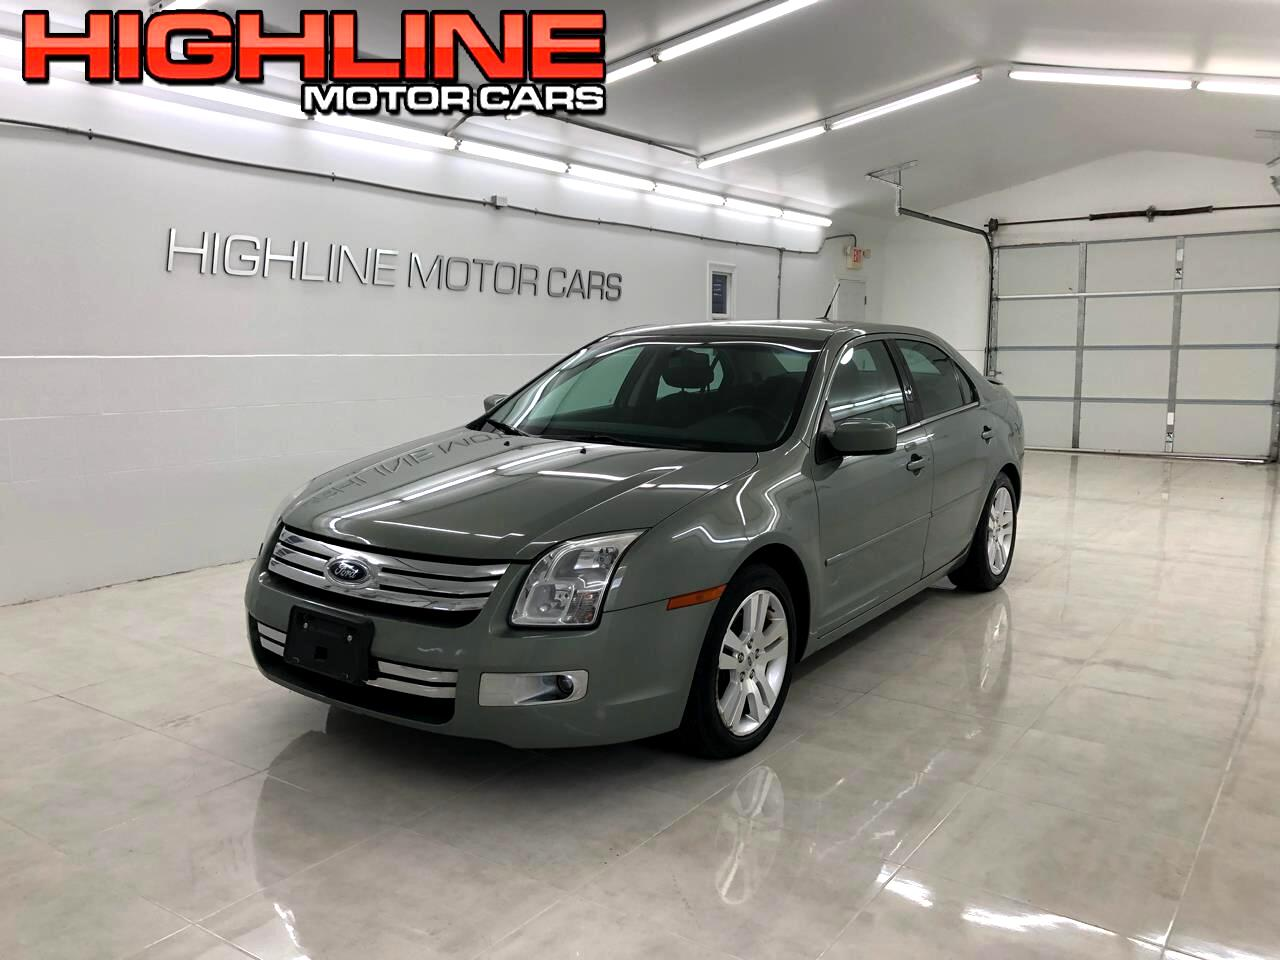 Ford Fusion 4dr Sdn V6 SEL AWD 2009